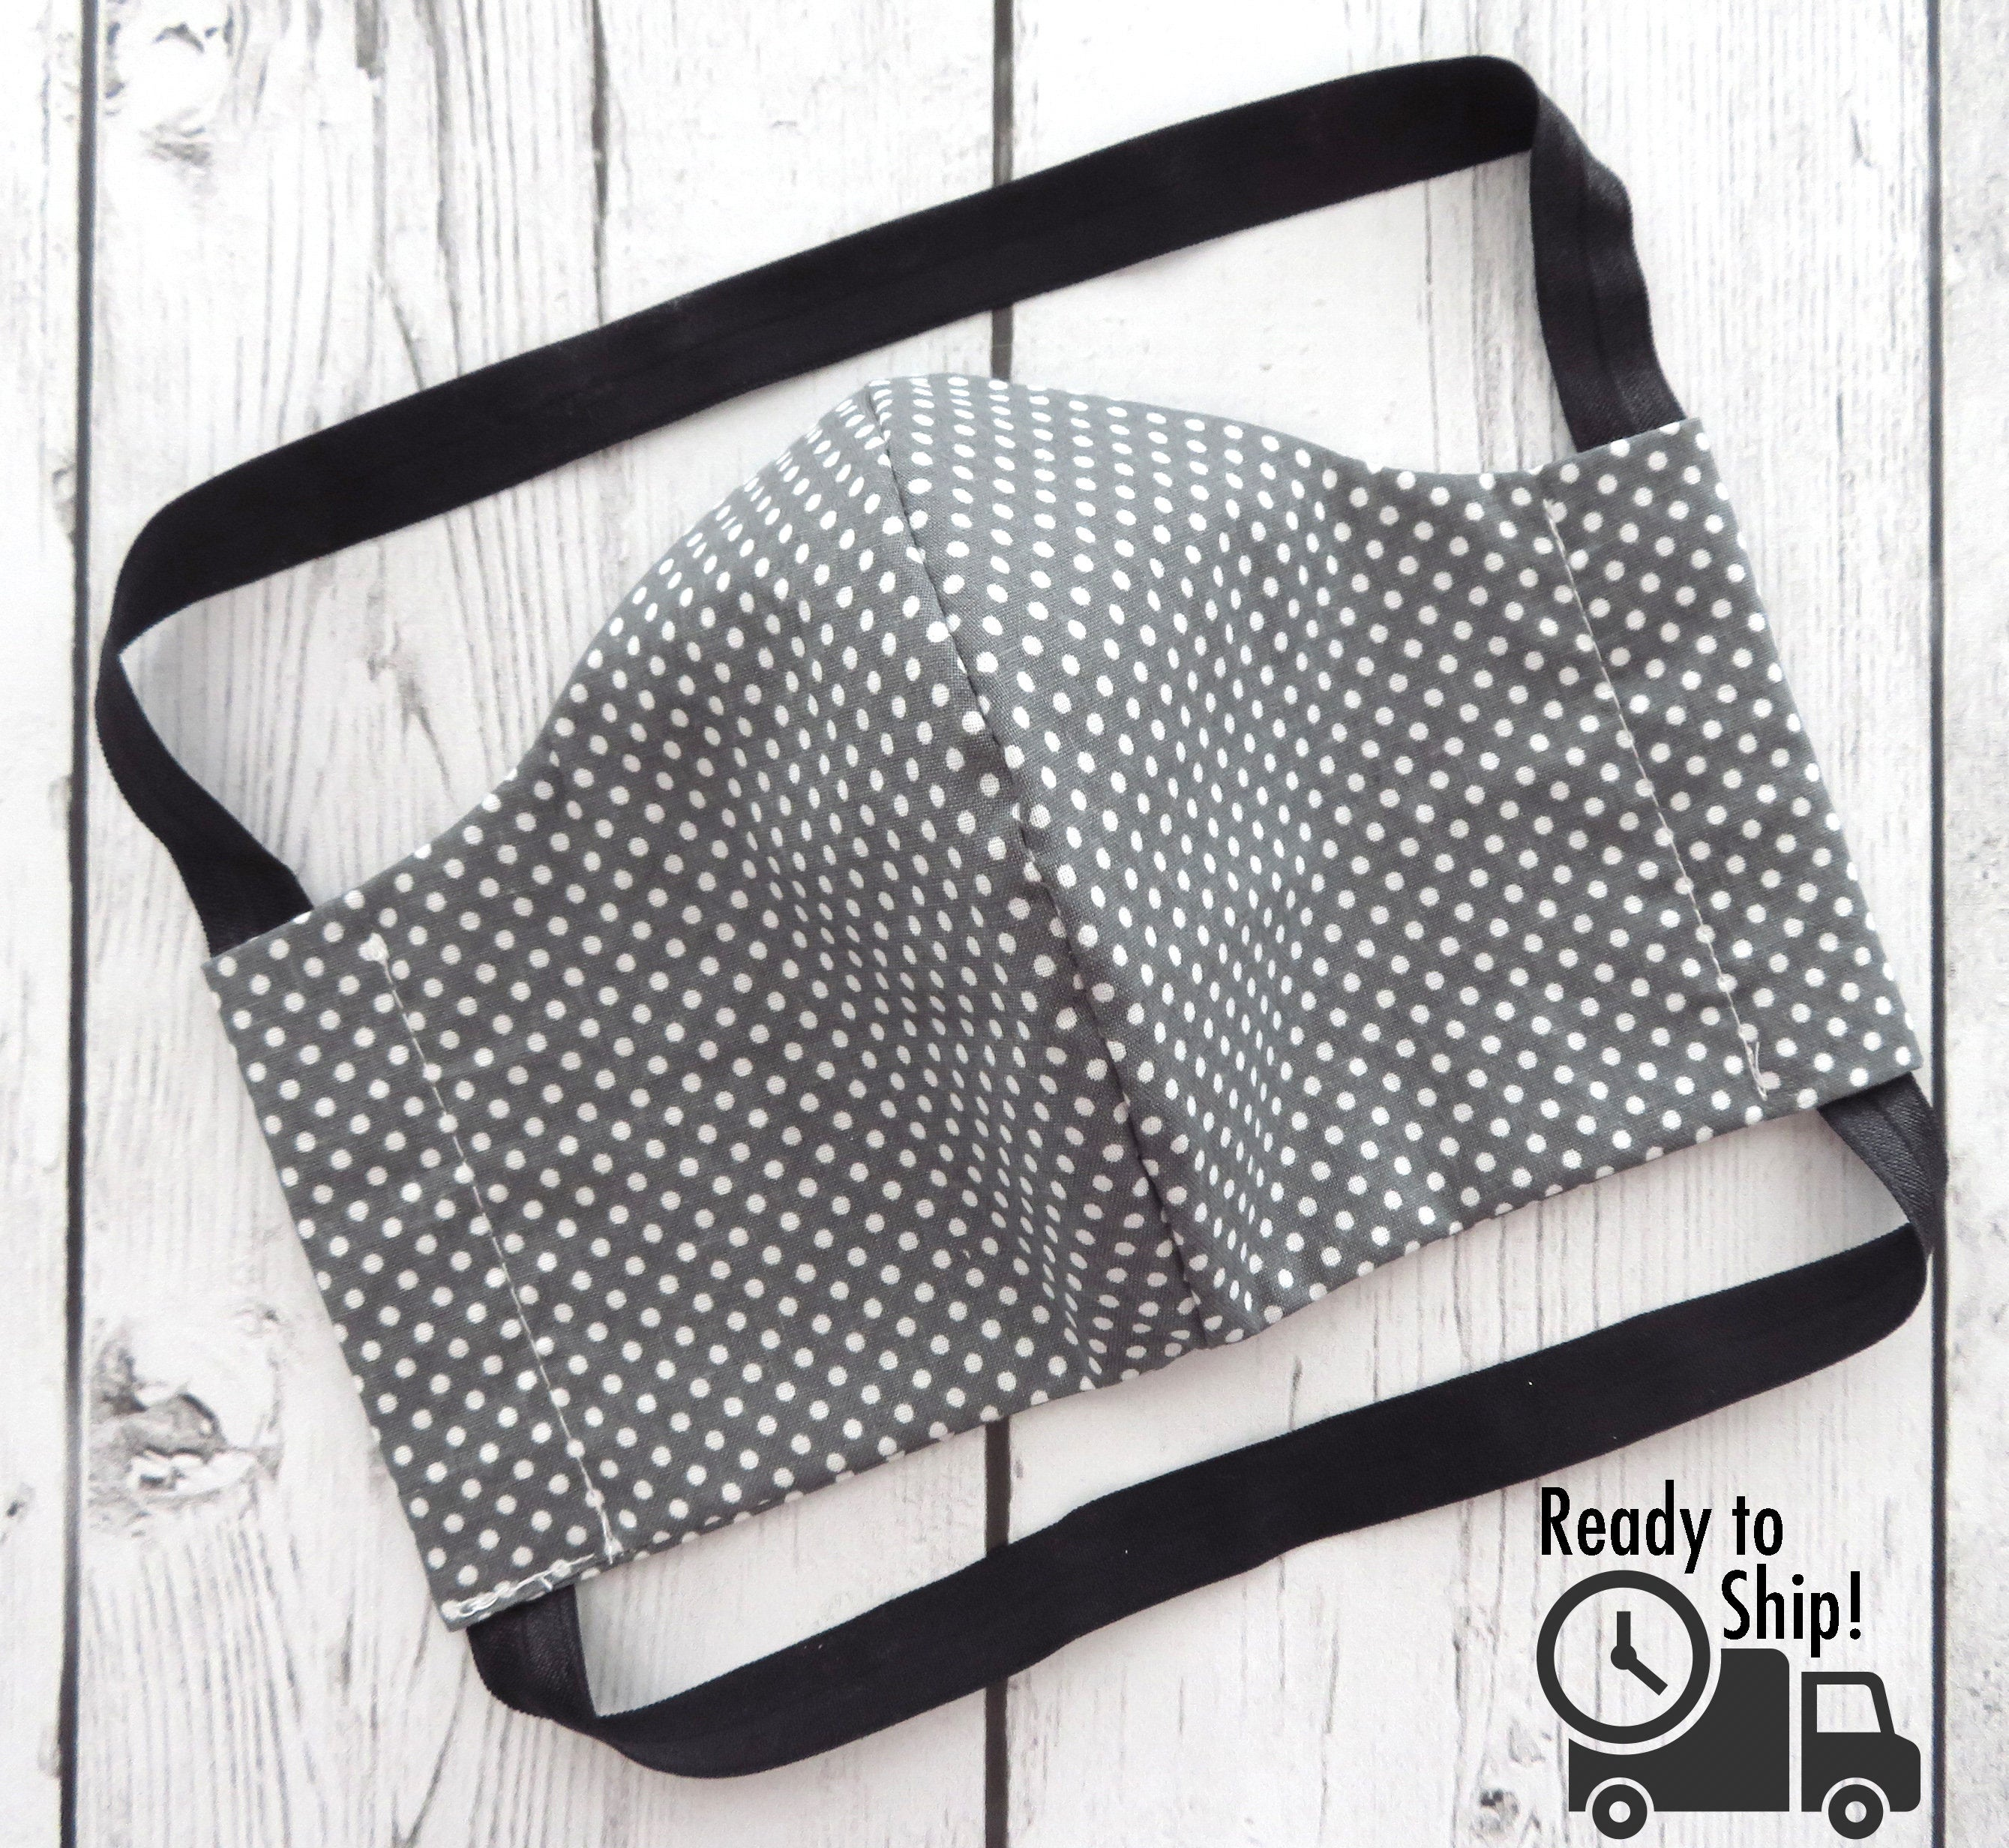 Men's Face Mask in Grey Dots  - READY TO SHIP!  handmade in usa, cotton face mask for adult, washable and re-usable cotton, ear saver design